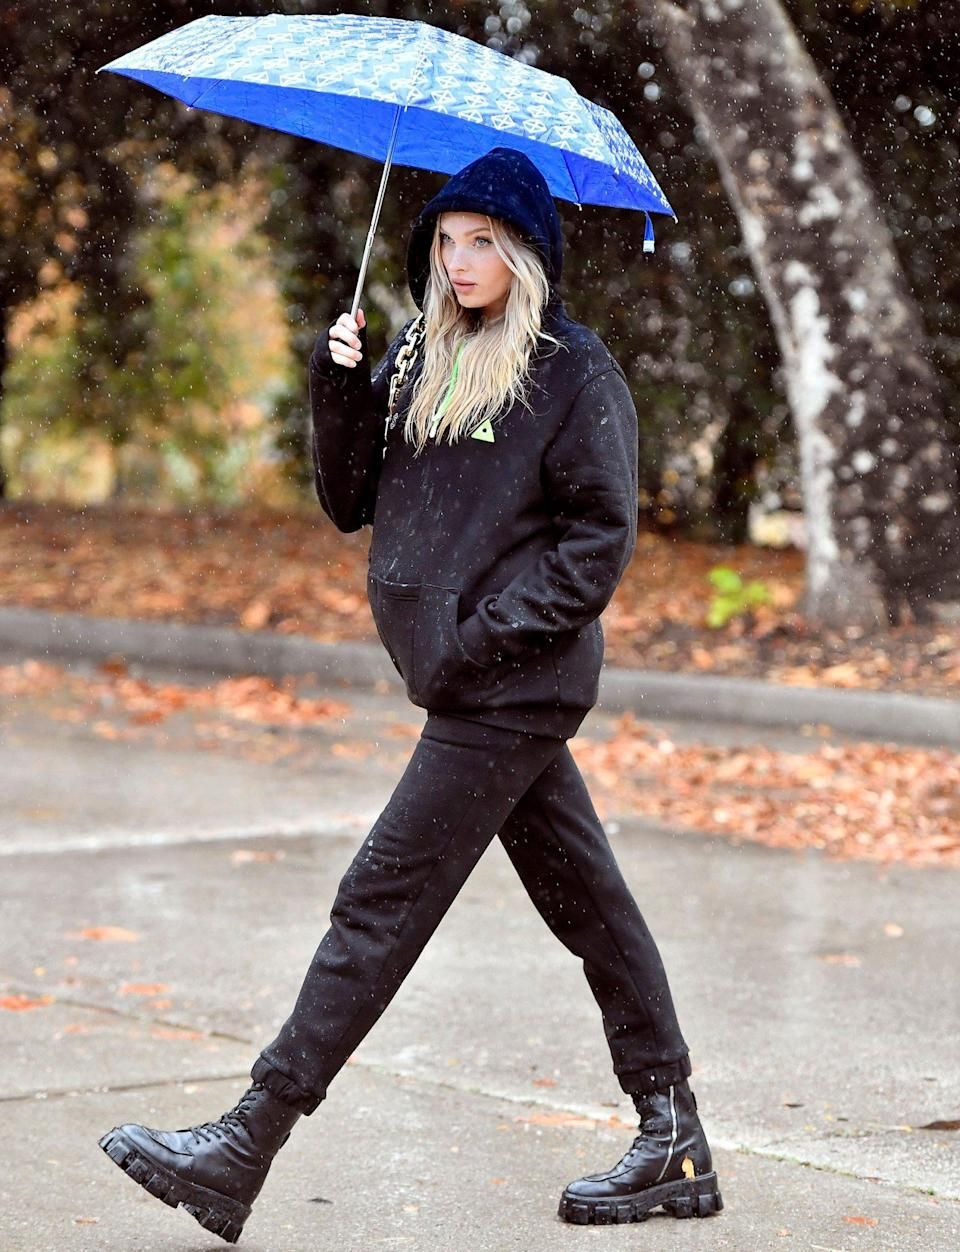 <p>Model mom-to-be Elsa Hosk takes a walk in the rain in Los Angeles on Monday.</p>